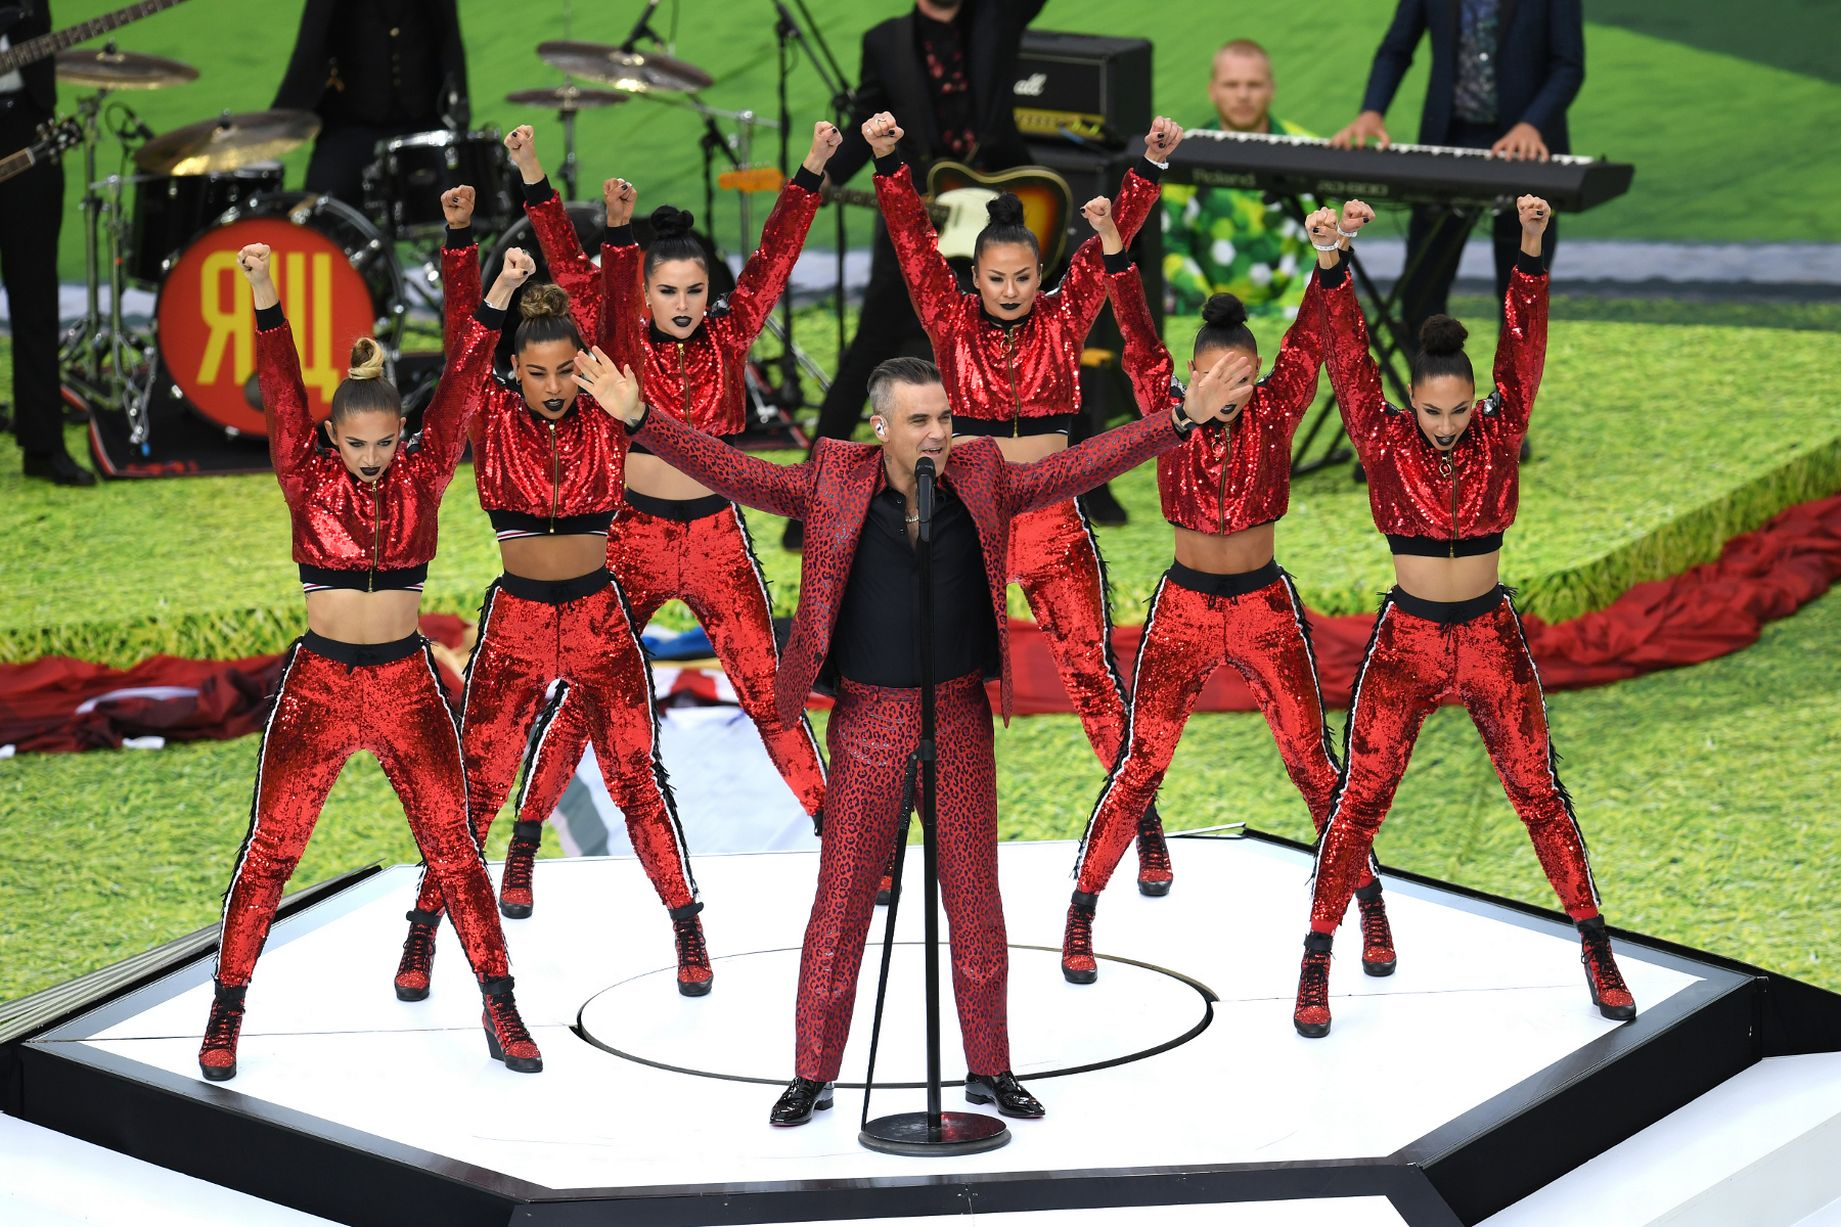 Robbie Williams cantando - 1841x1227